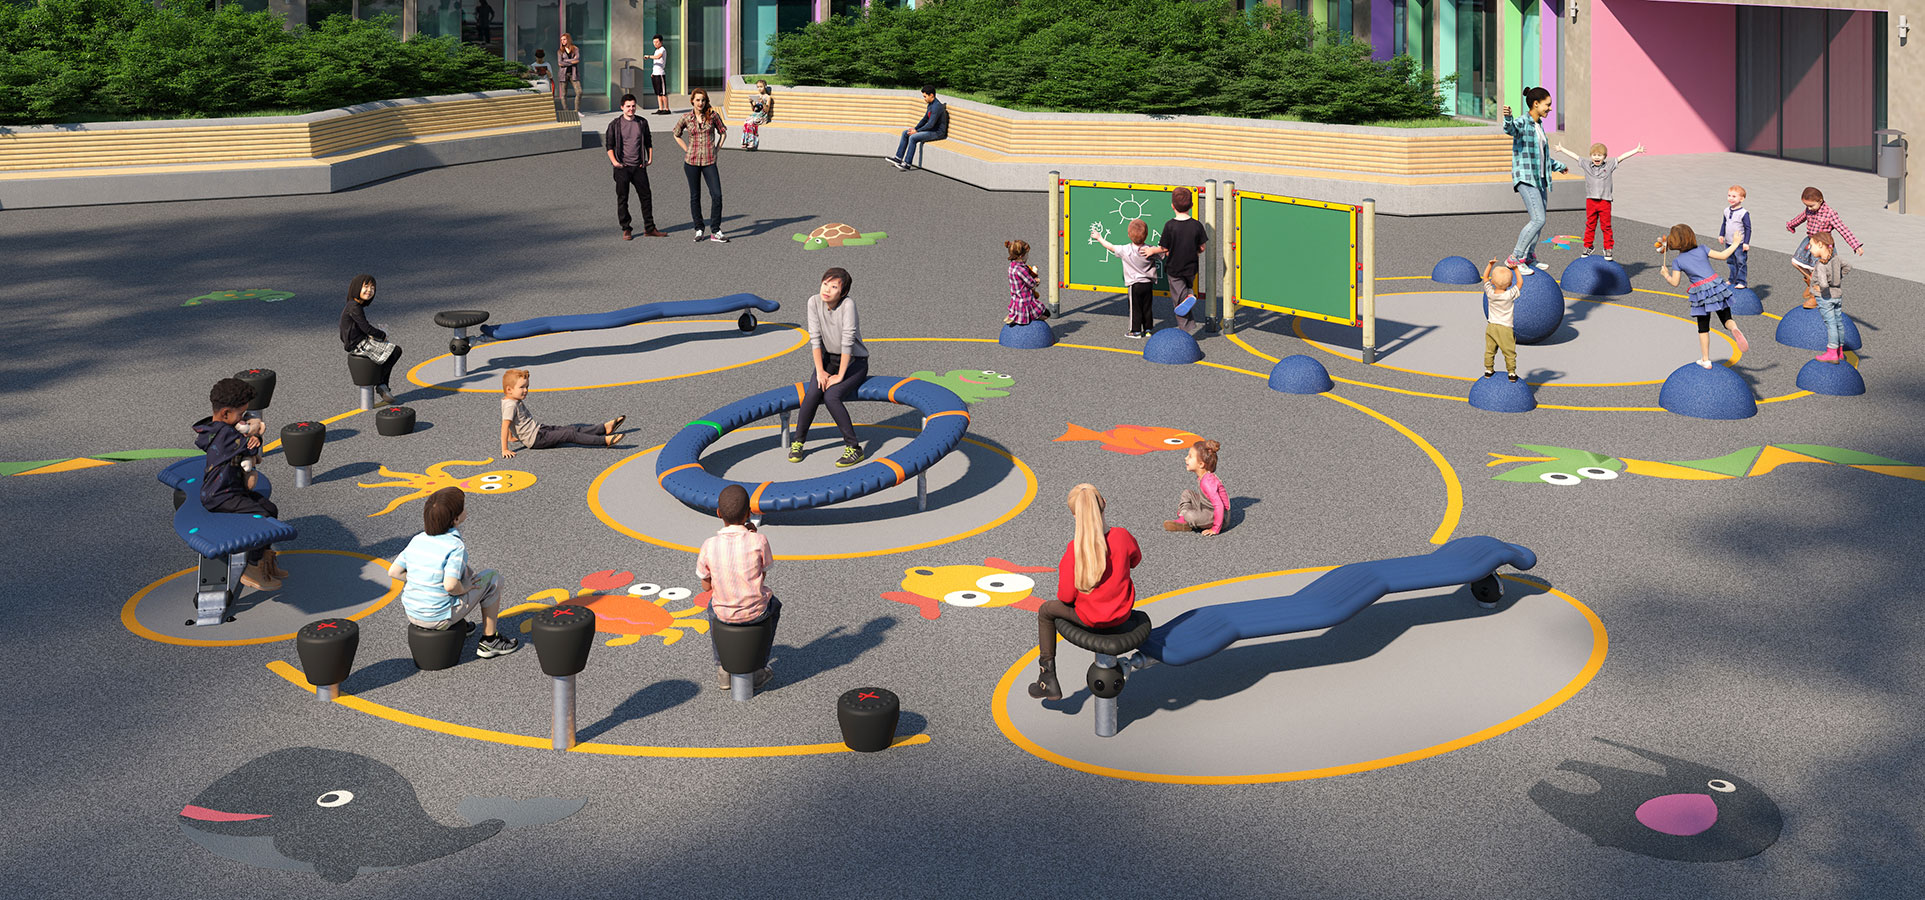 FinalMP0019_Outdoor_classrooms_Preschool_Urban_web.jpg